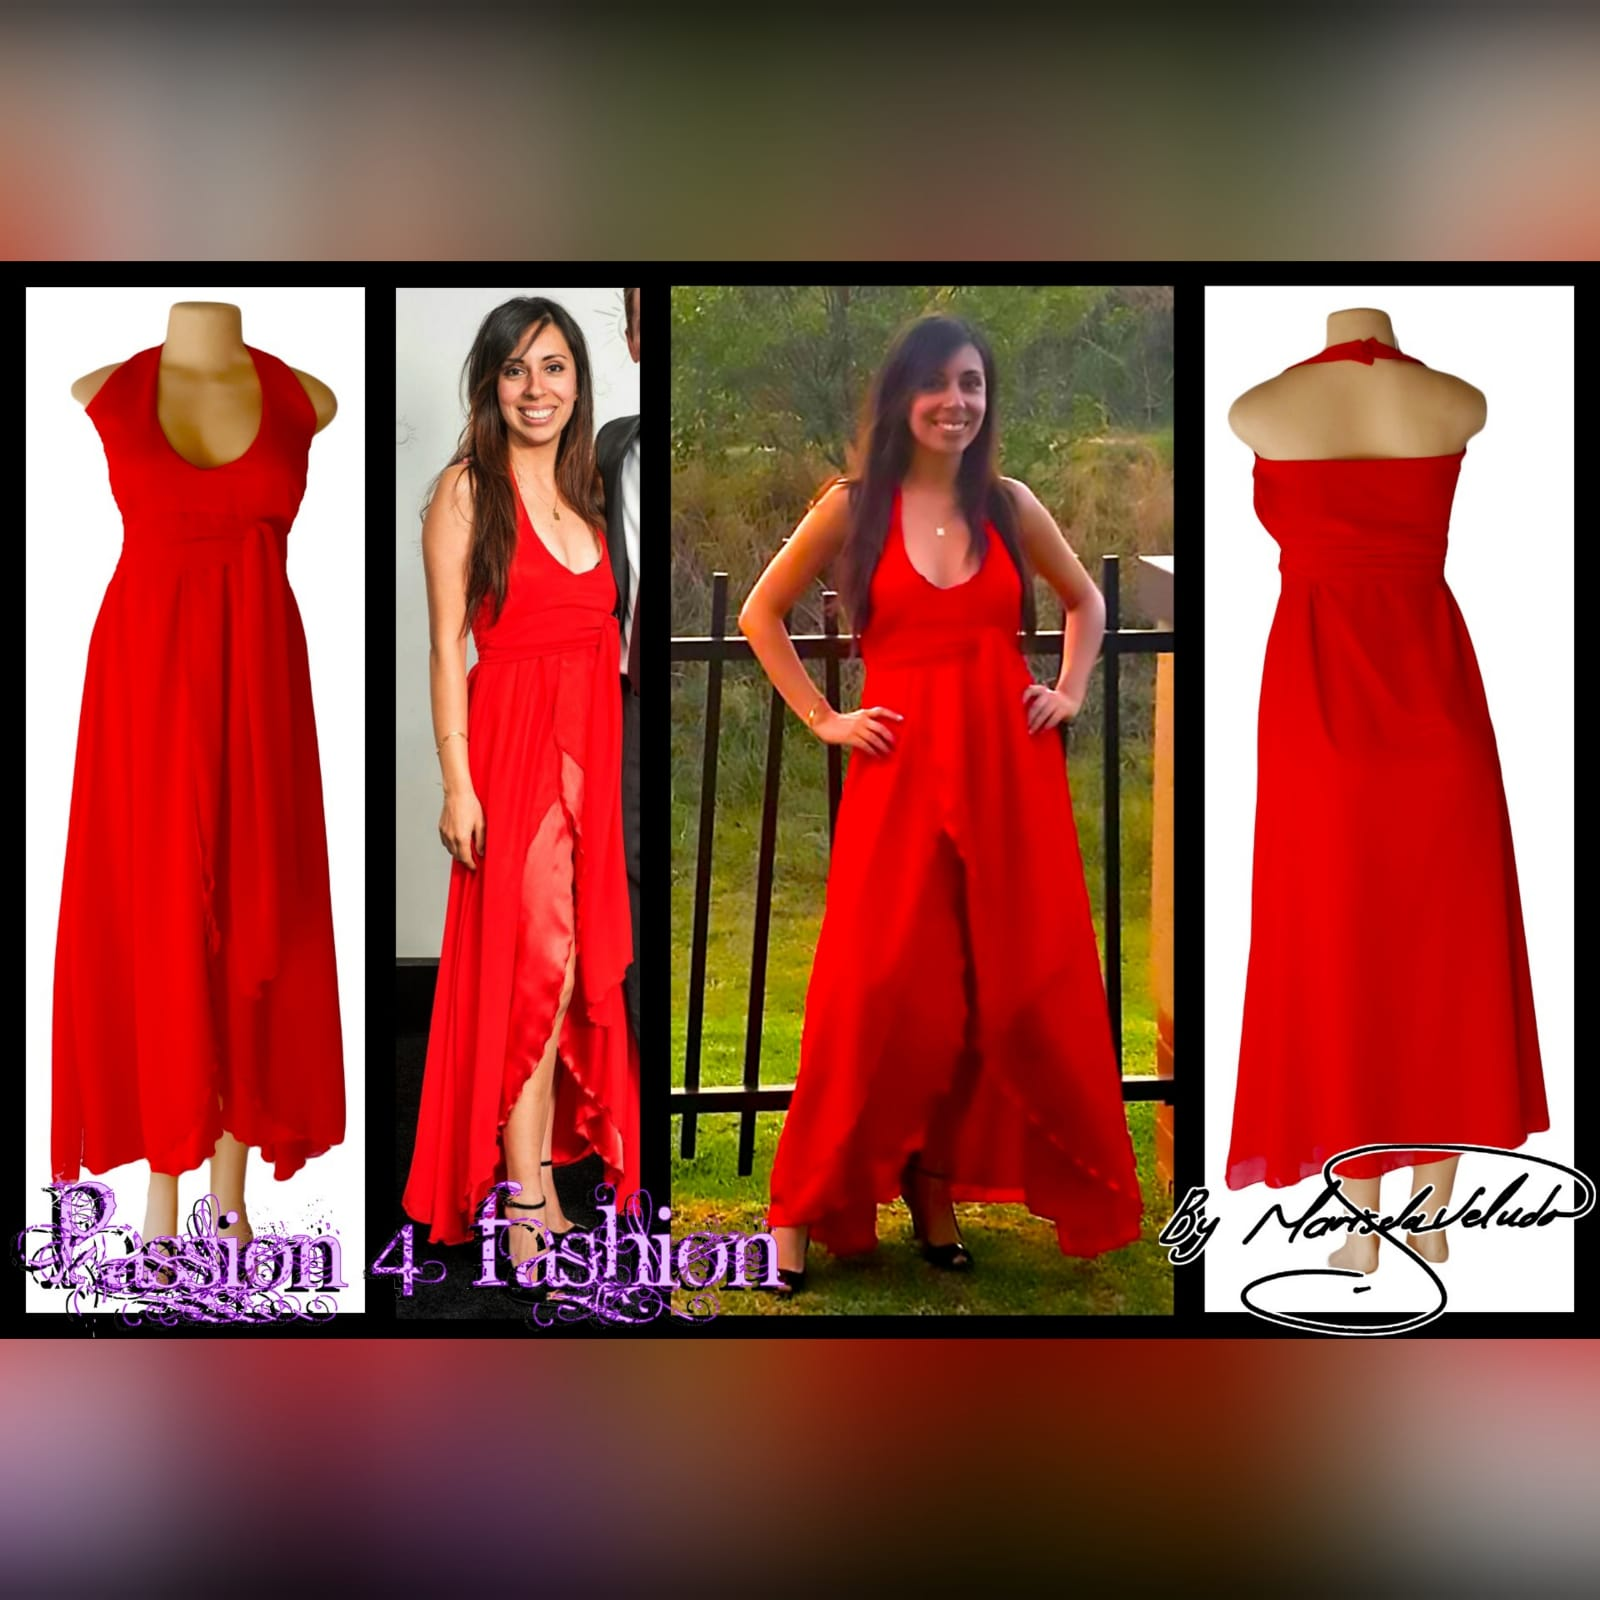 Bright red halter neck evening dress 5 bright red halter neck evening dress with a satin and chiffon crossed layer creating a double slit. A ruched belt